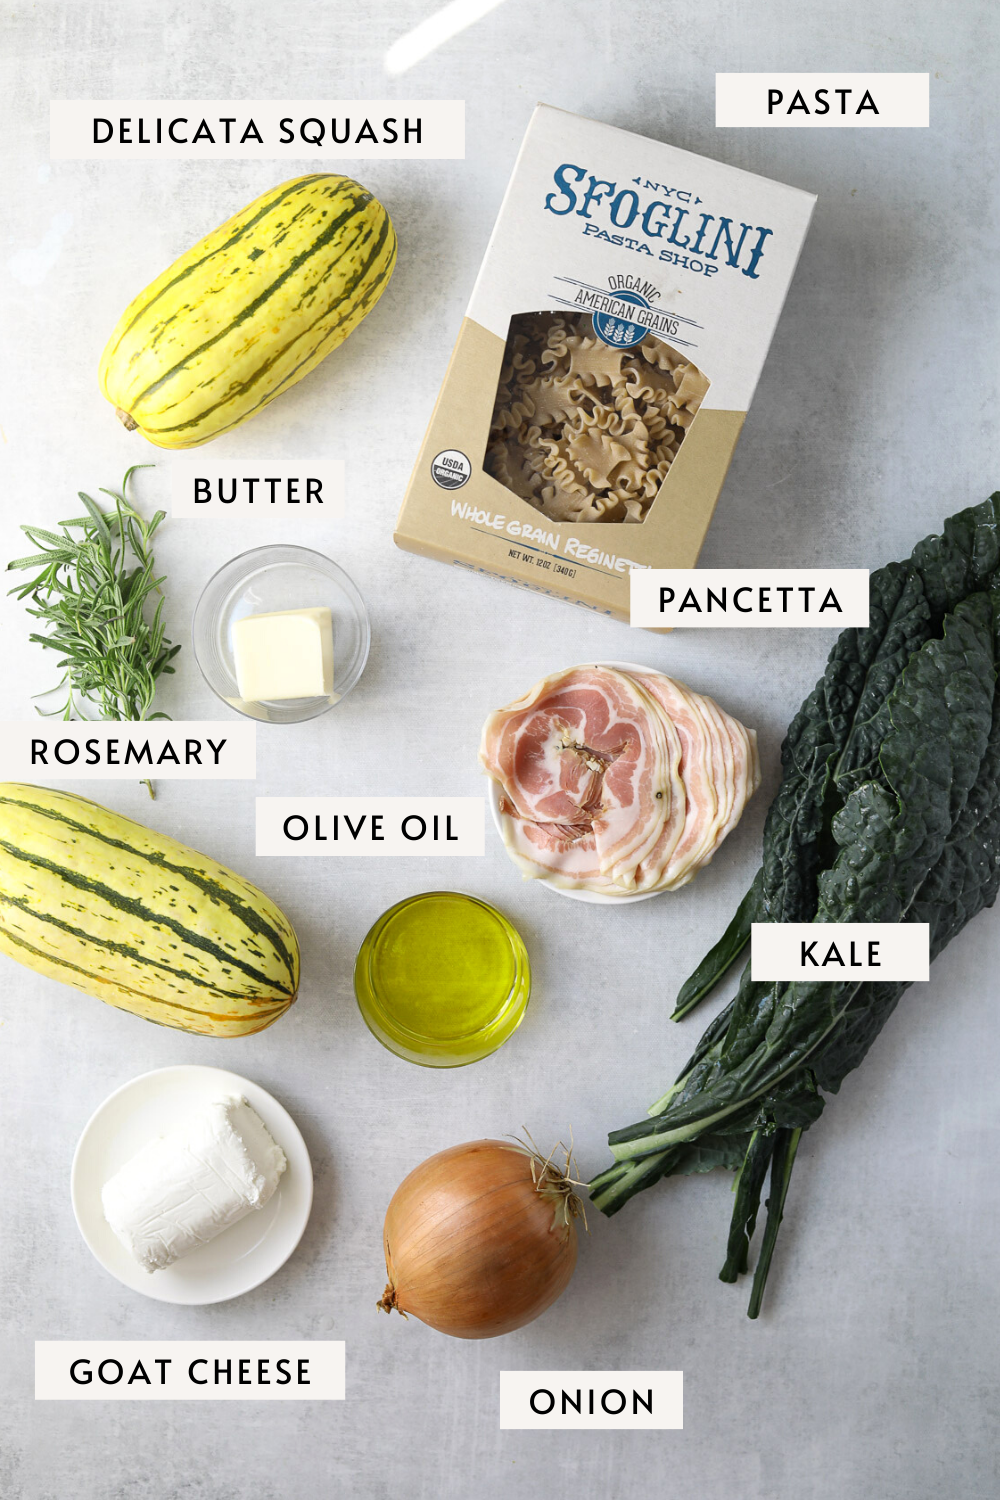 a box of pasta, two delicata squash, a bunch of kale, sliced panetta, rosemary and butter